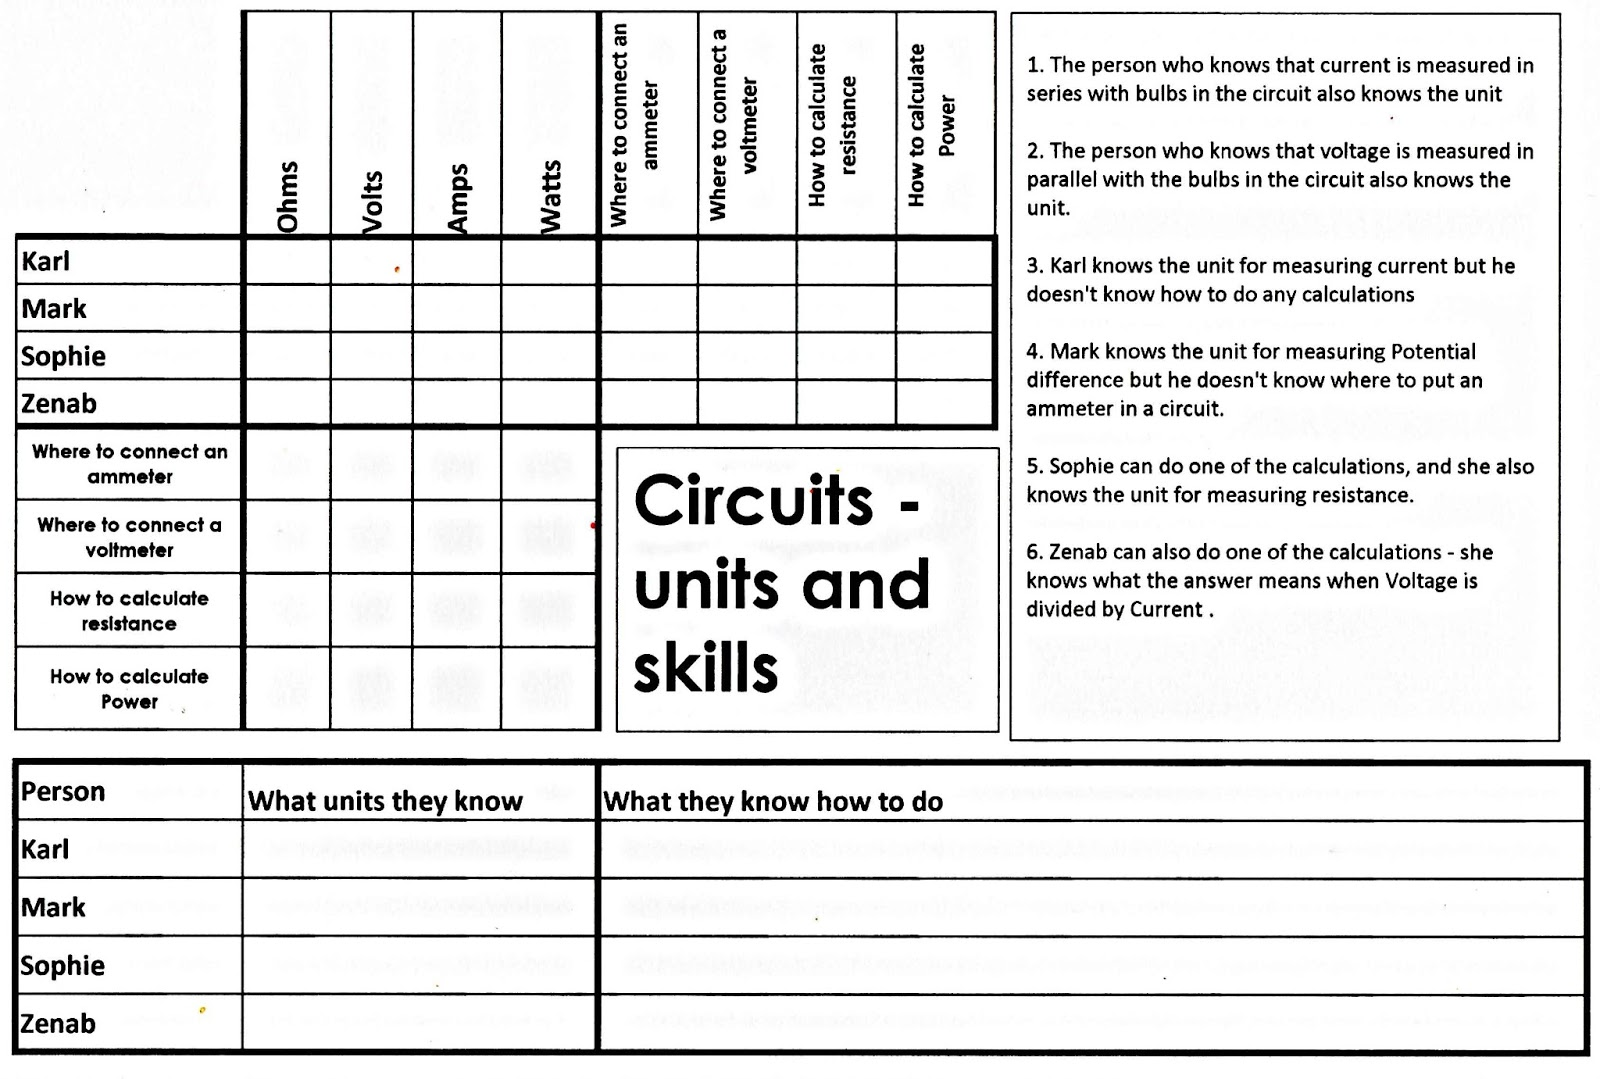 Circuits Units Skills A Logic Problem Science Puzzles Potential Difference In